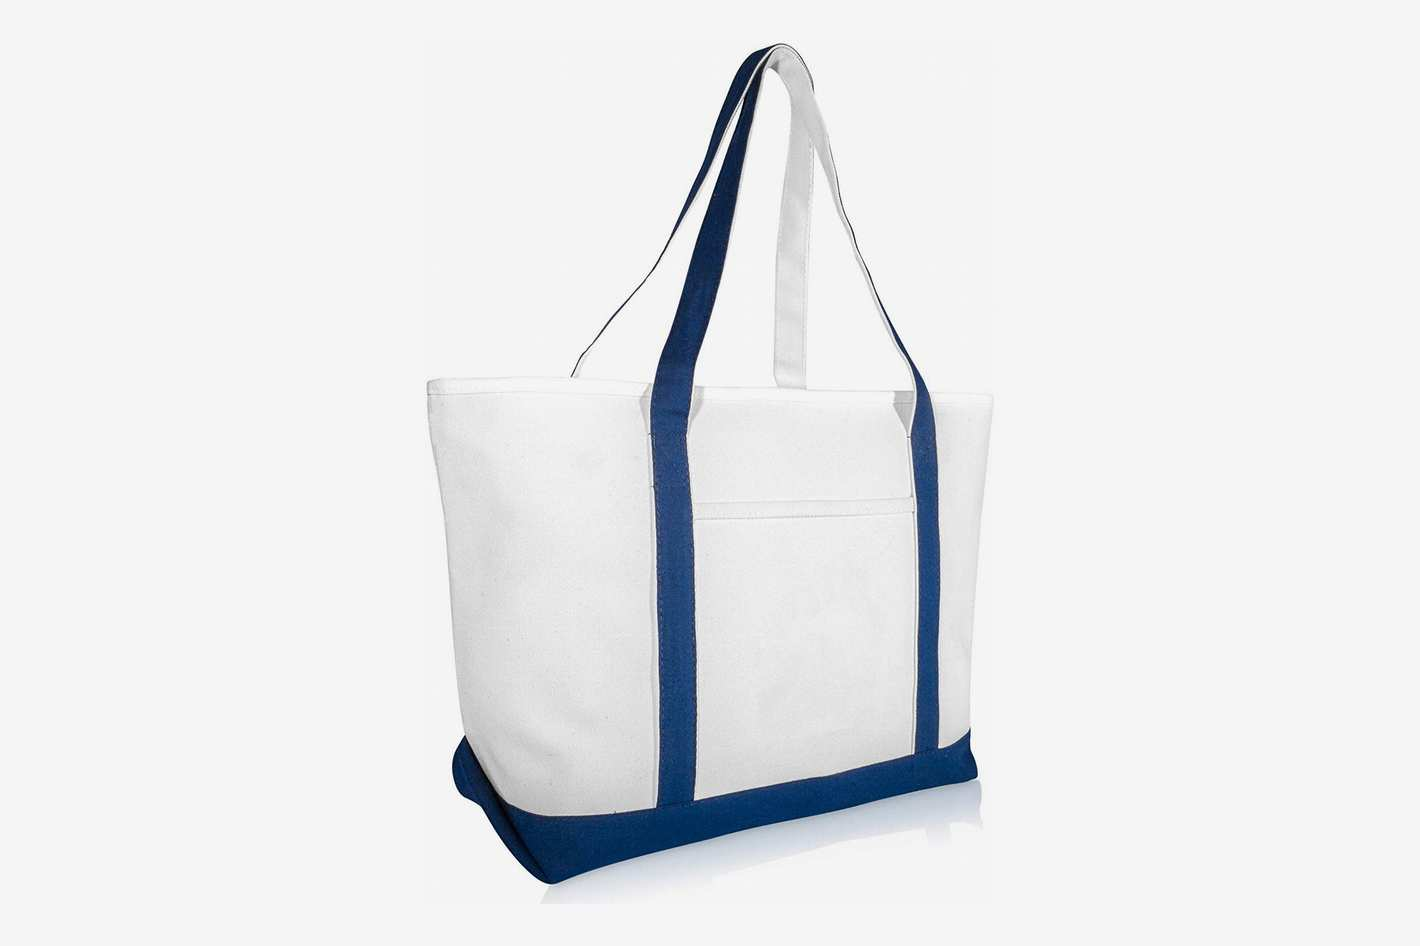 DALIX 23 Premium 24 oz. Cotton Canvas Shopping Tote